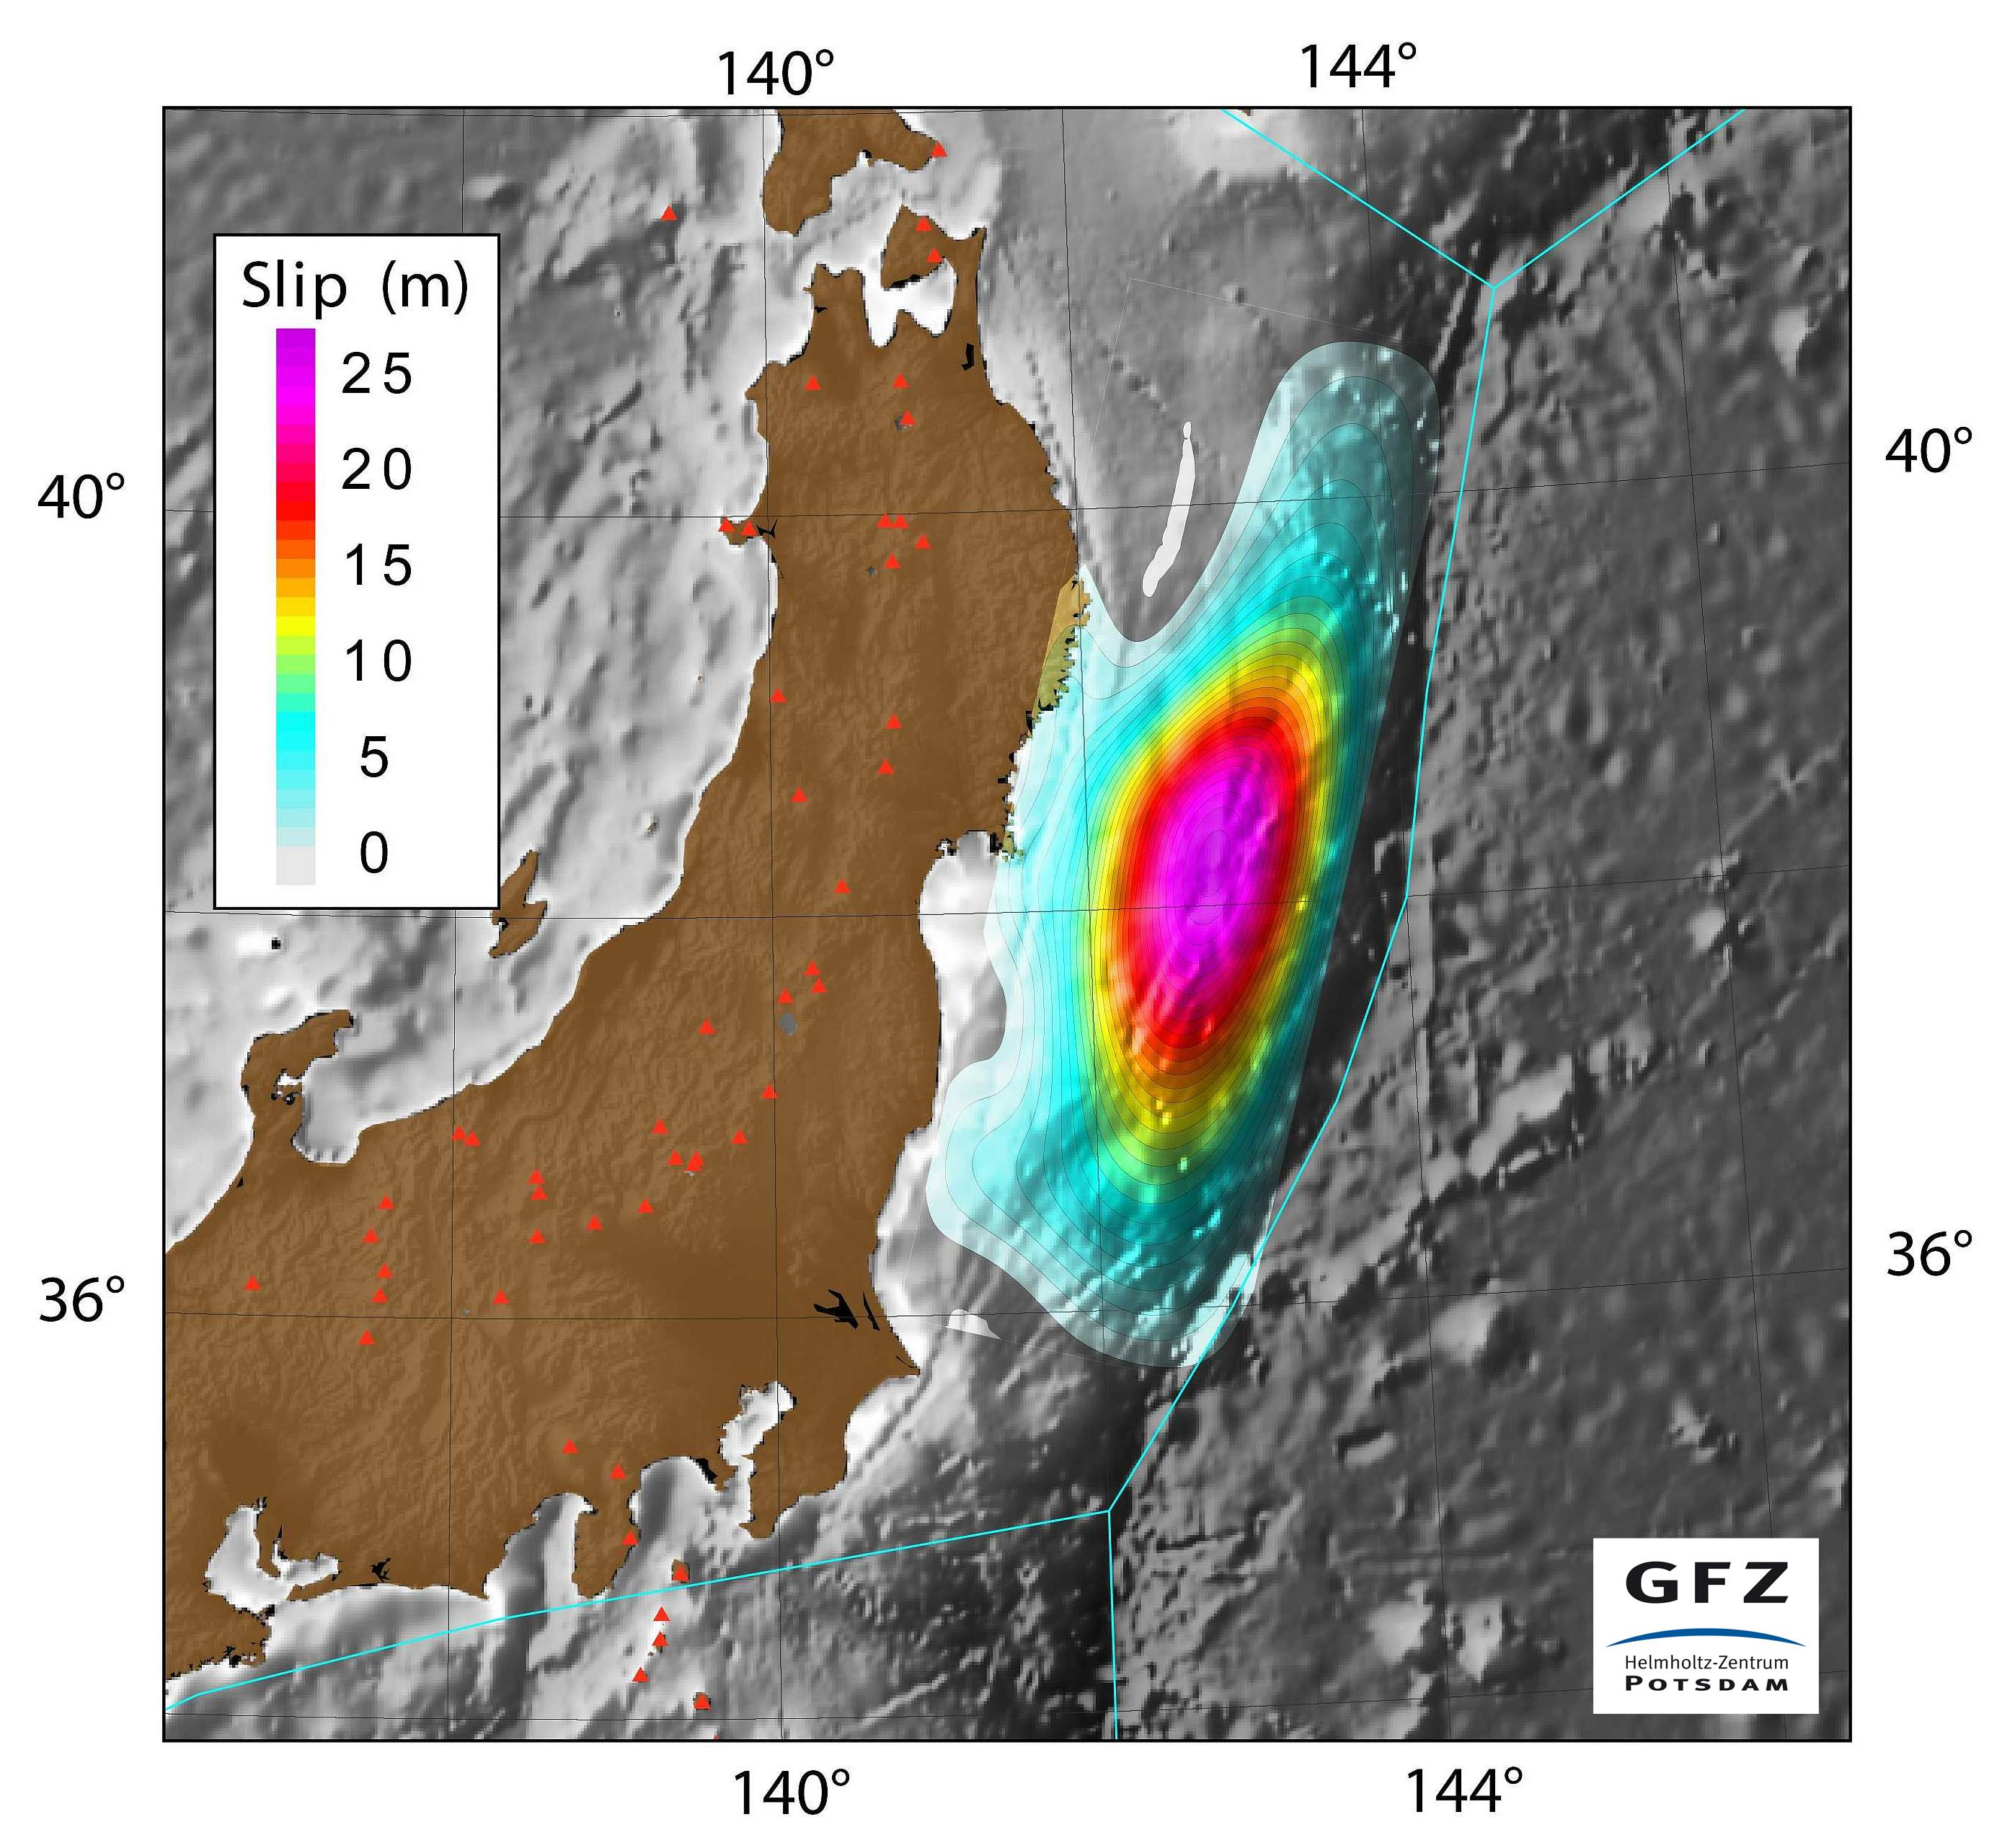 Figure 2: The rupture region (colored area) of Friday's quake may have been as large as the state of West Virginia. At the center of the area, the plates may have jumped passed each other by more than 25 meters. (Source: GFZ-Potsdam)